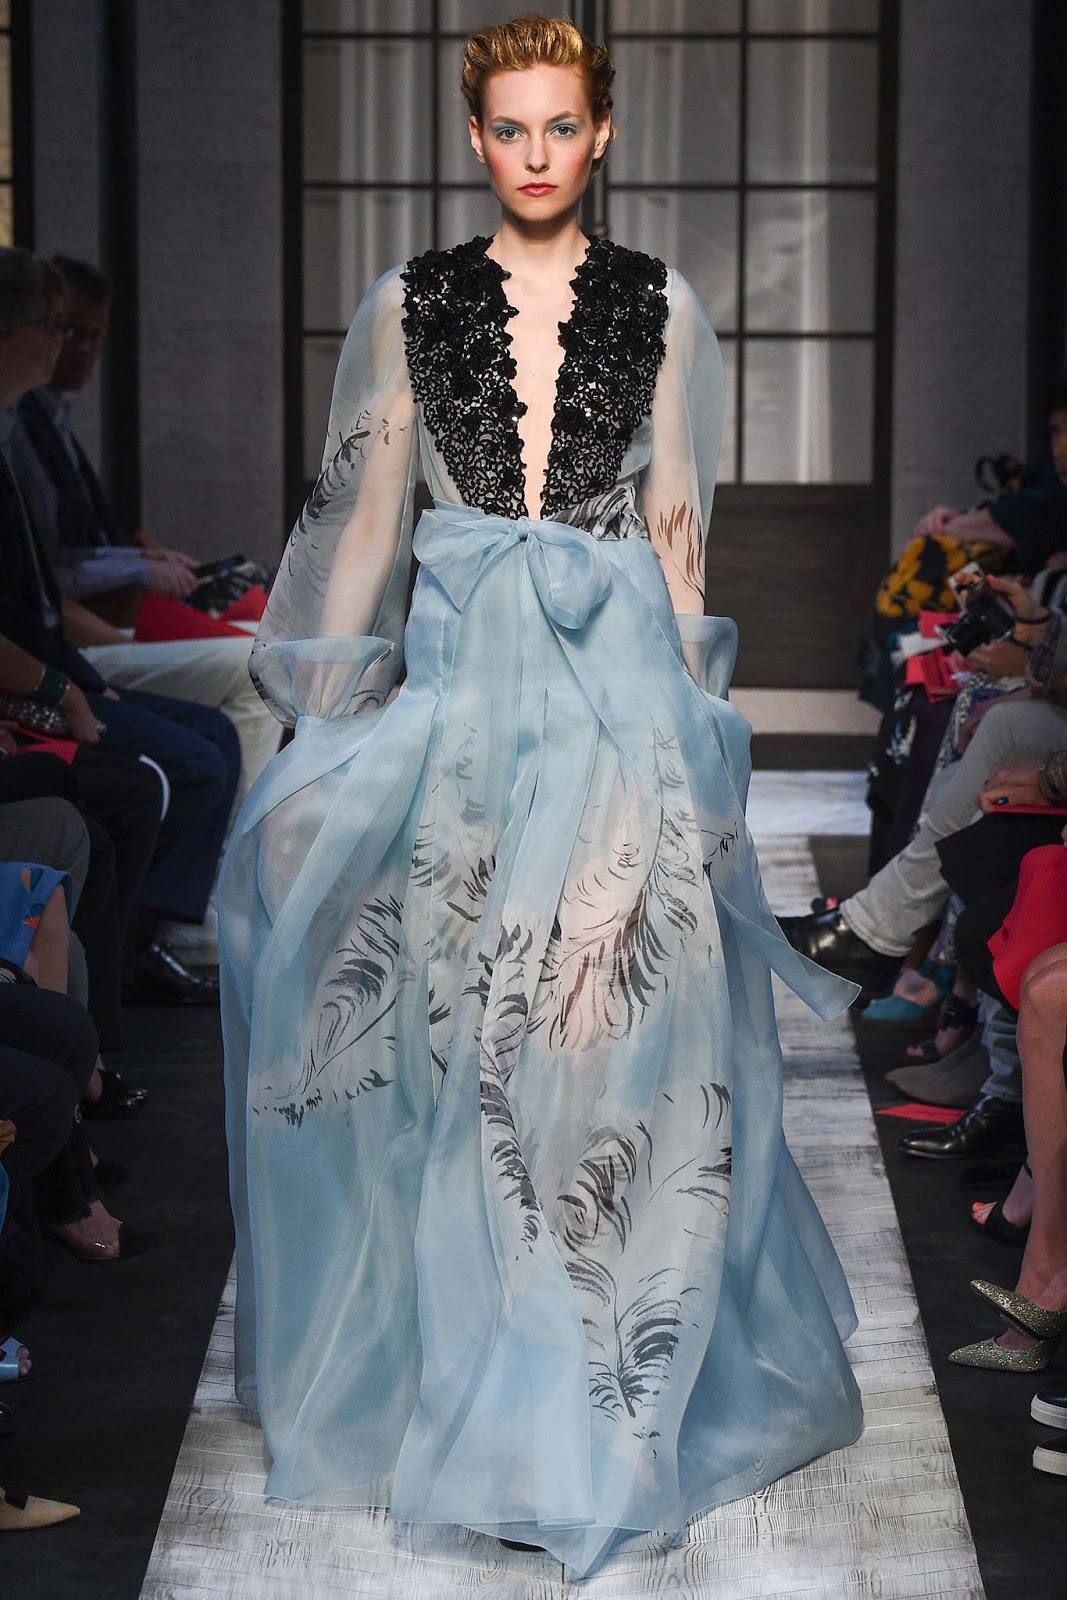 Fashion runway schiaparelli fall 2015 haute couture for 2015 haute couture